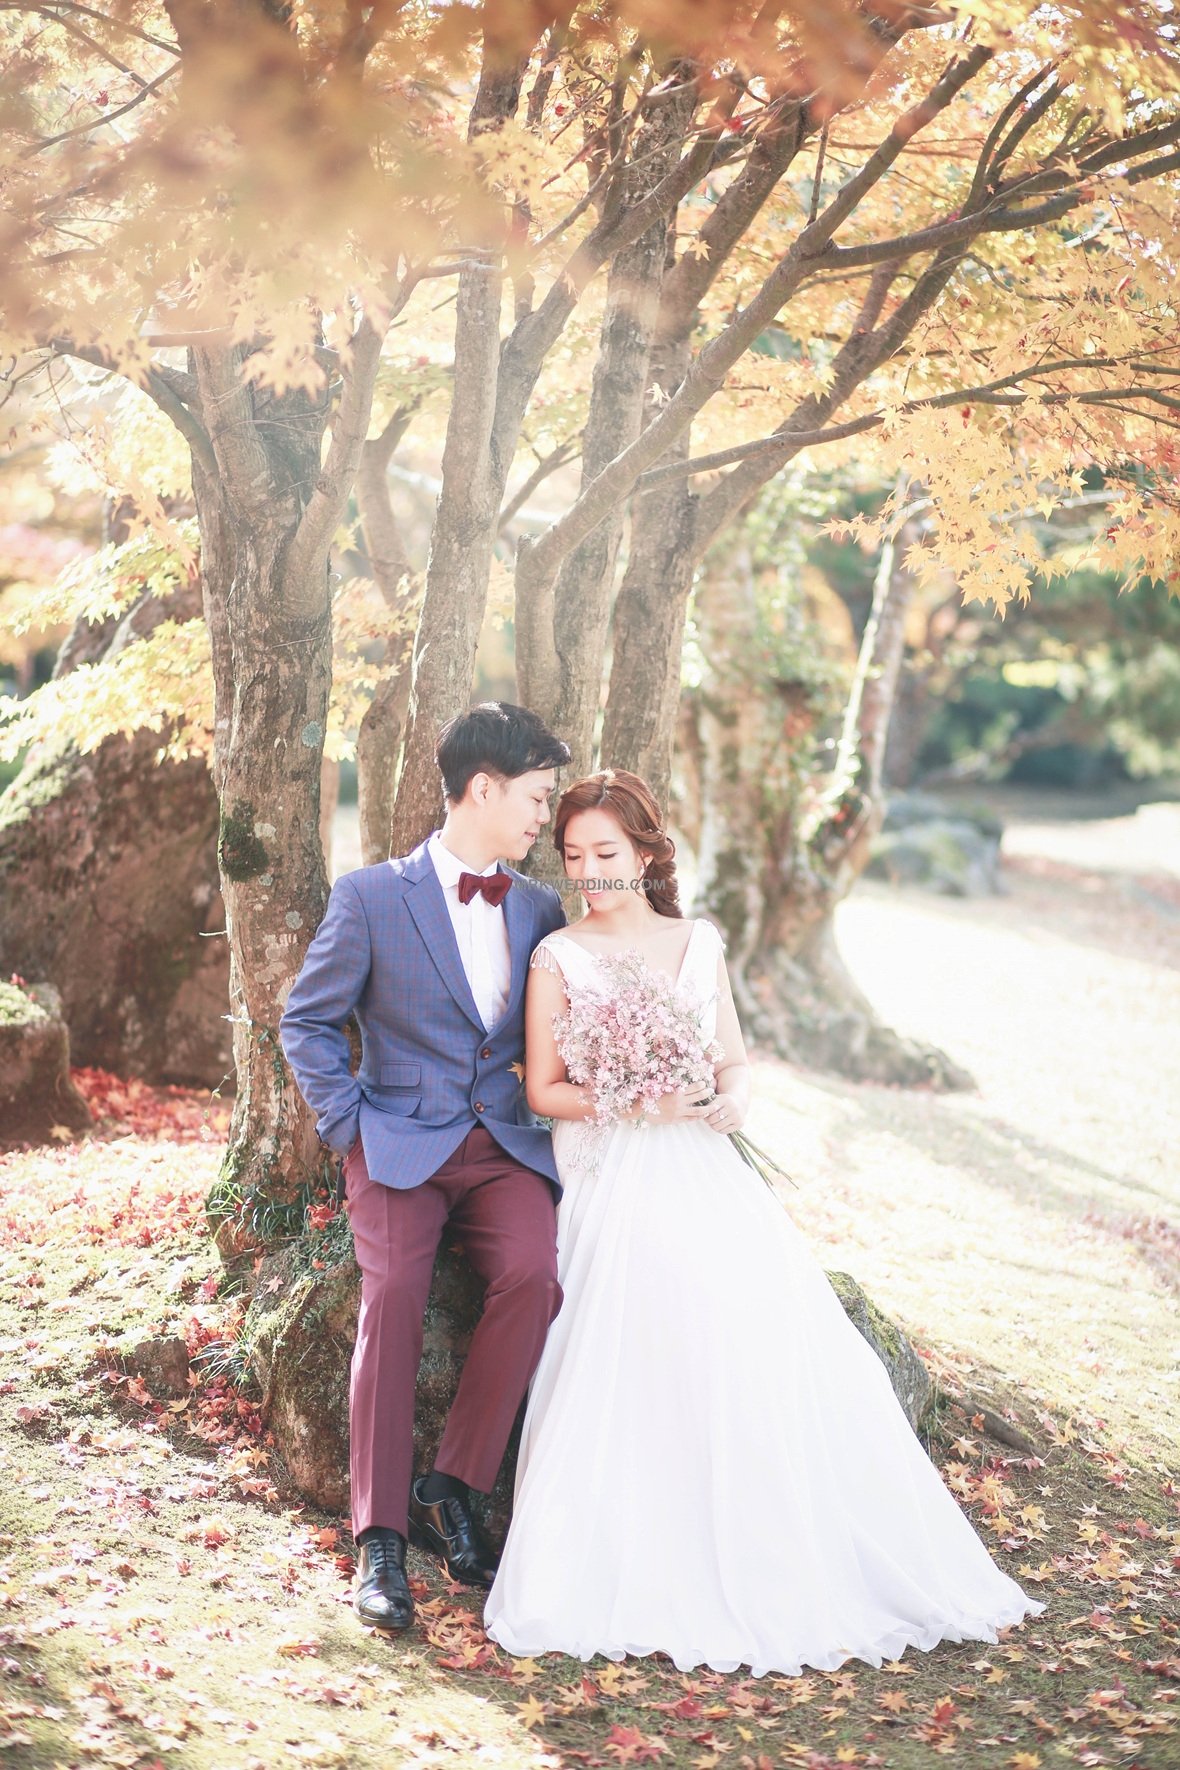 MrK Korea Wedding (28).jpg